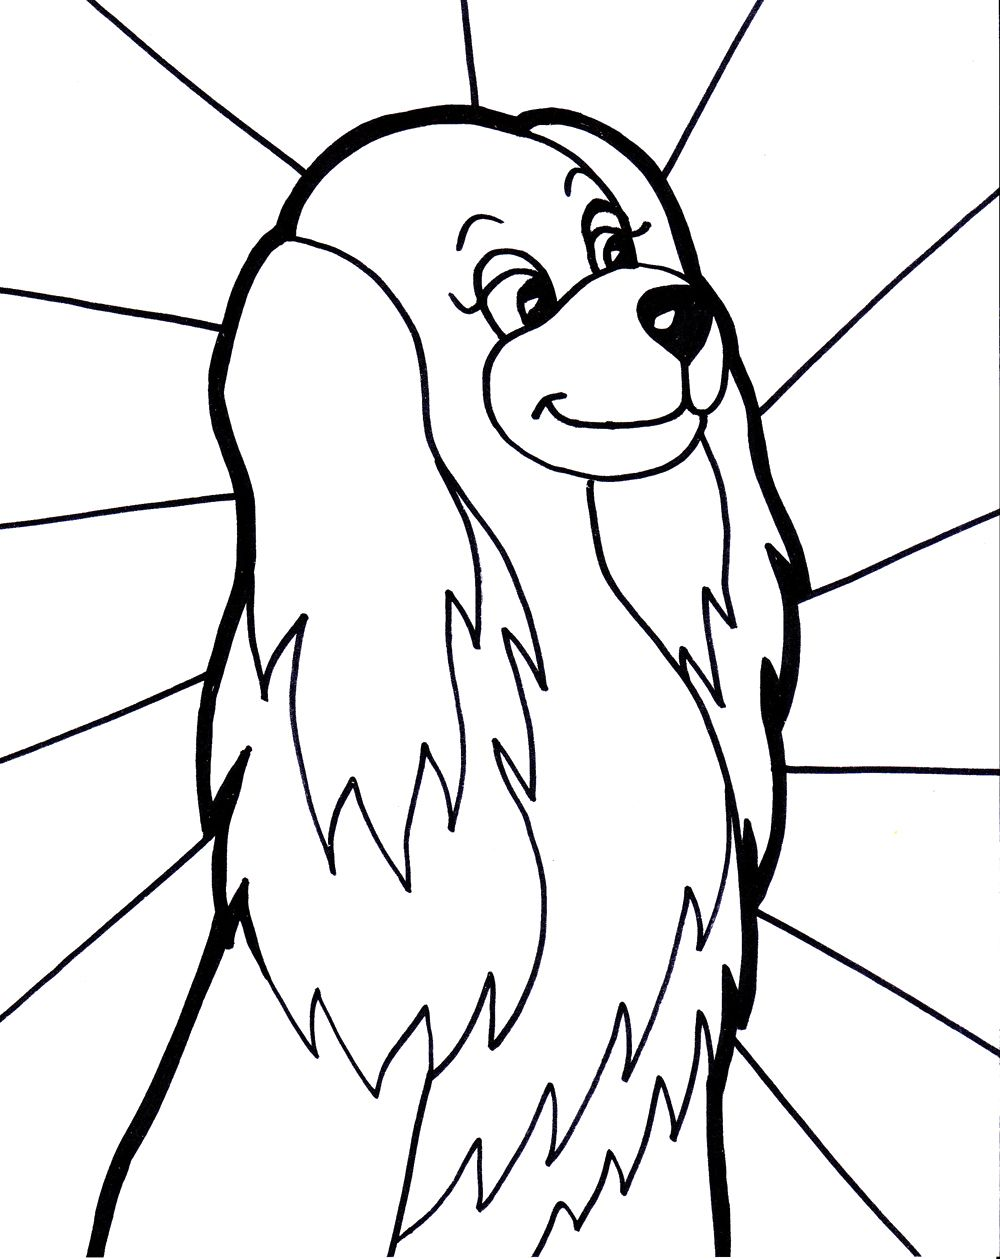 Girl Dog Coloring Page Dog Coloring Page Girl And Dog Coloring